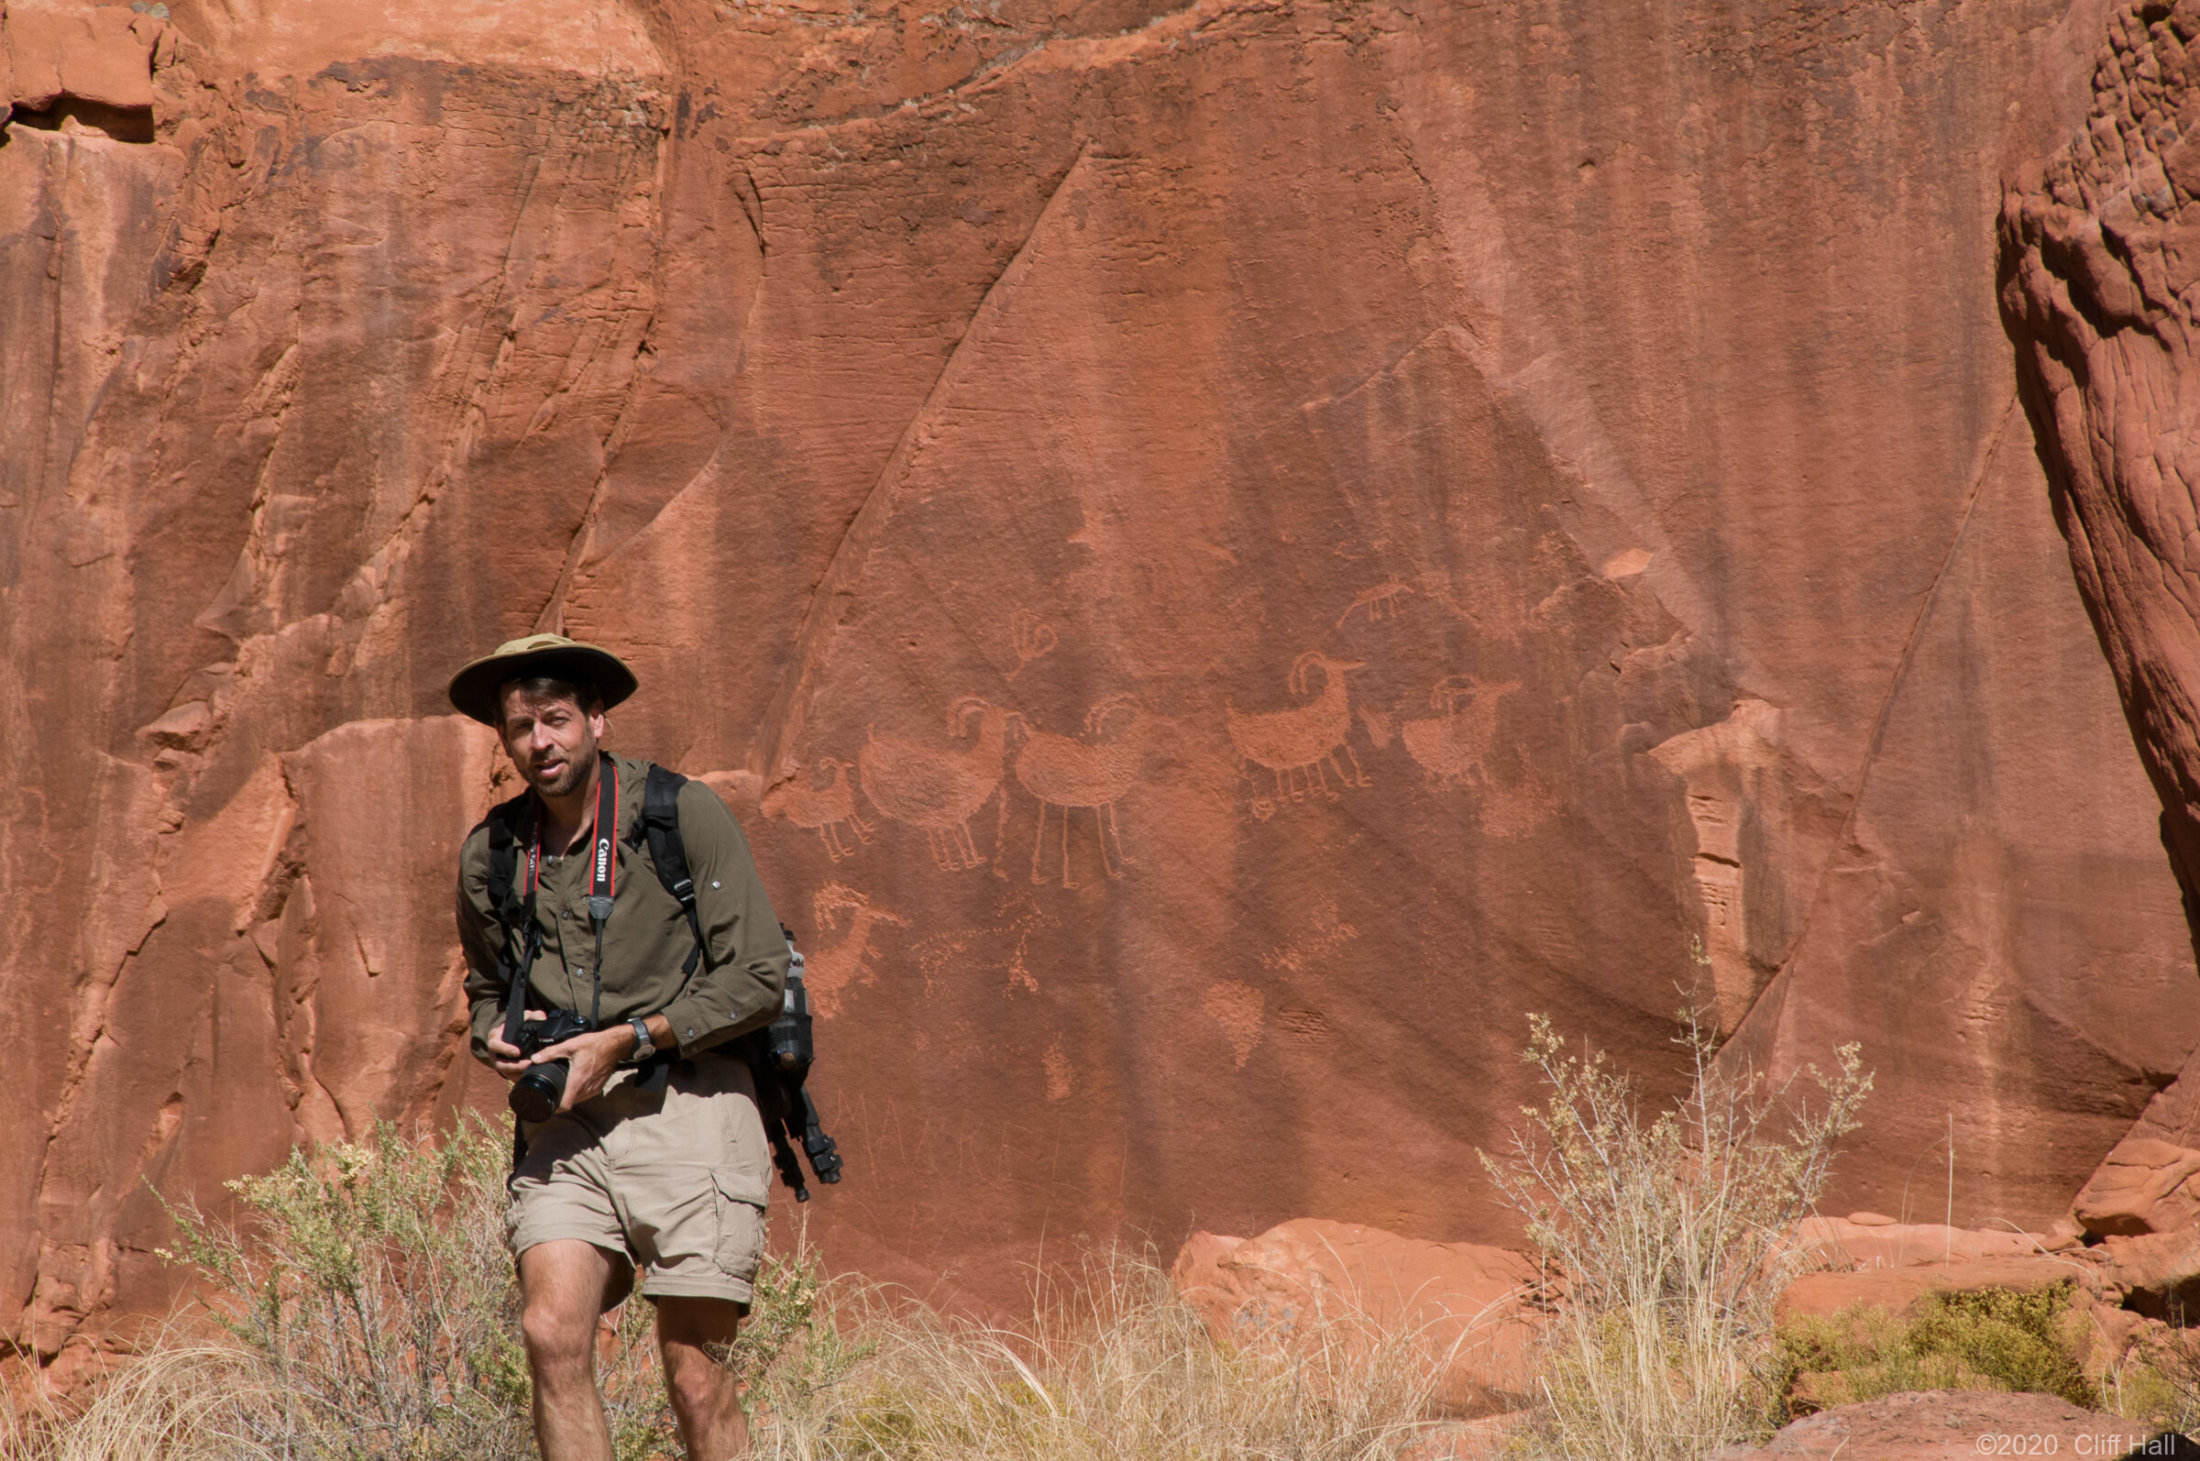 Now where are those petroglyphs?